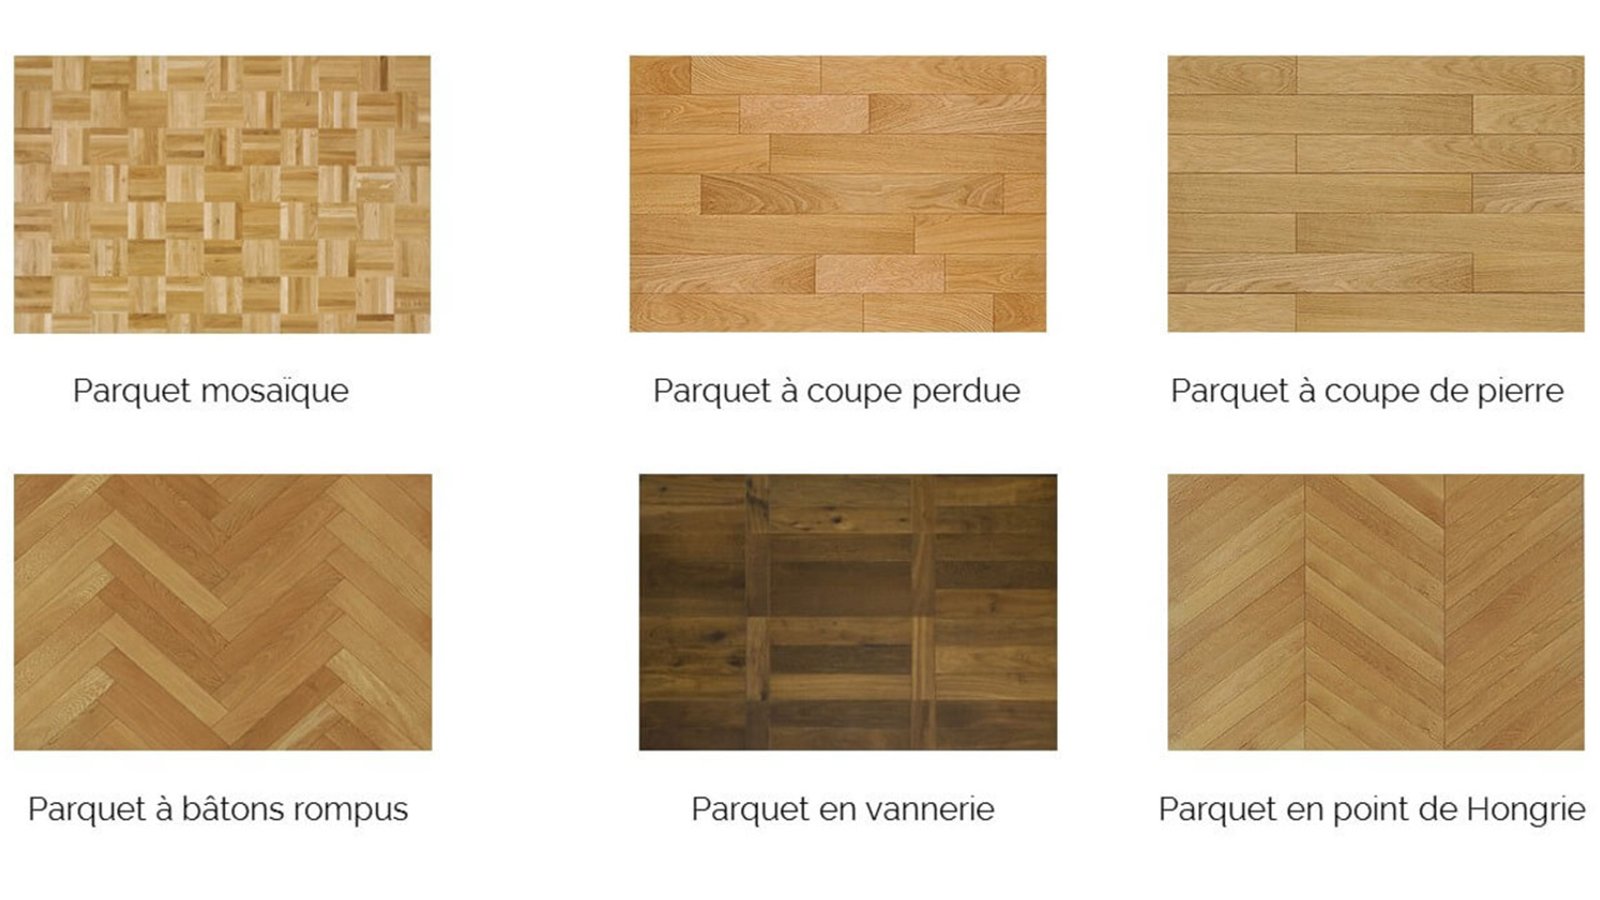 poser parquet flottant sur moquette prix de poele a bois. Black Bedroom Furniture Sets. Home Design Ideas